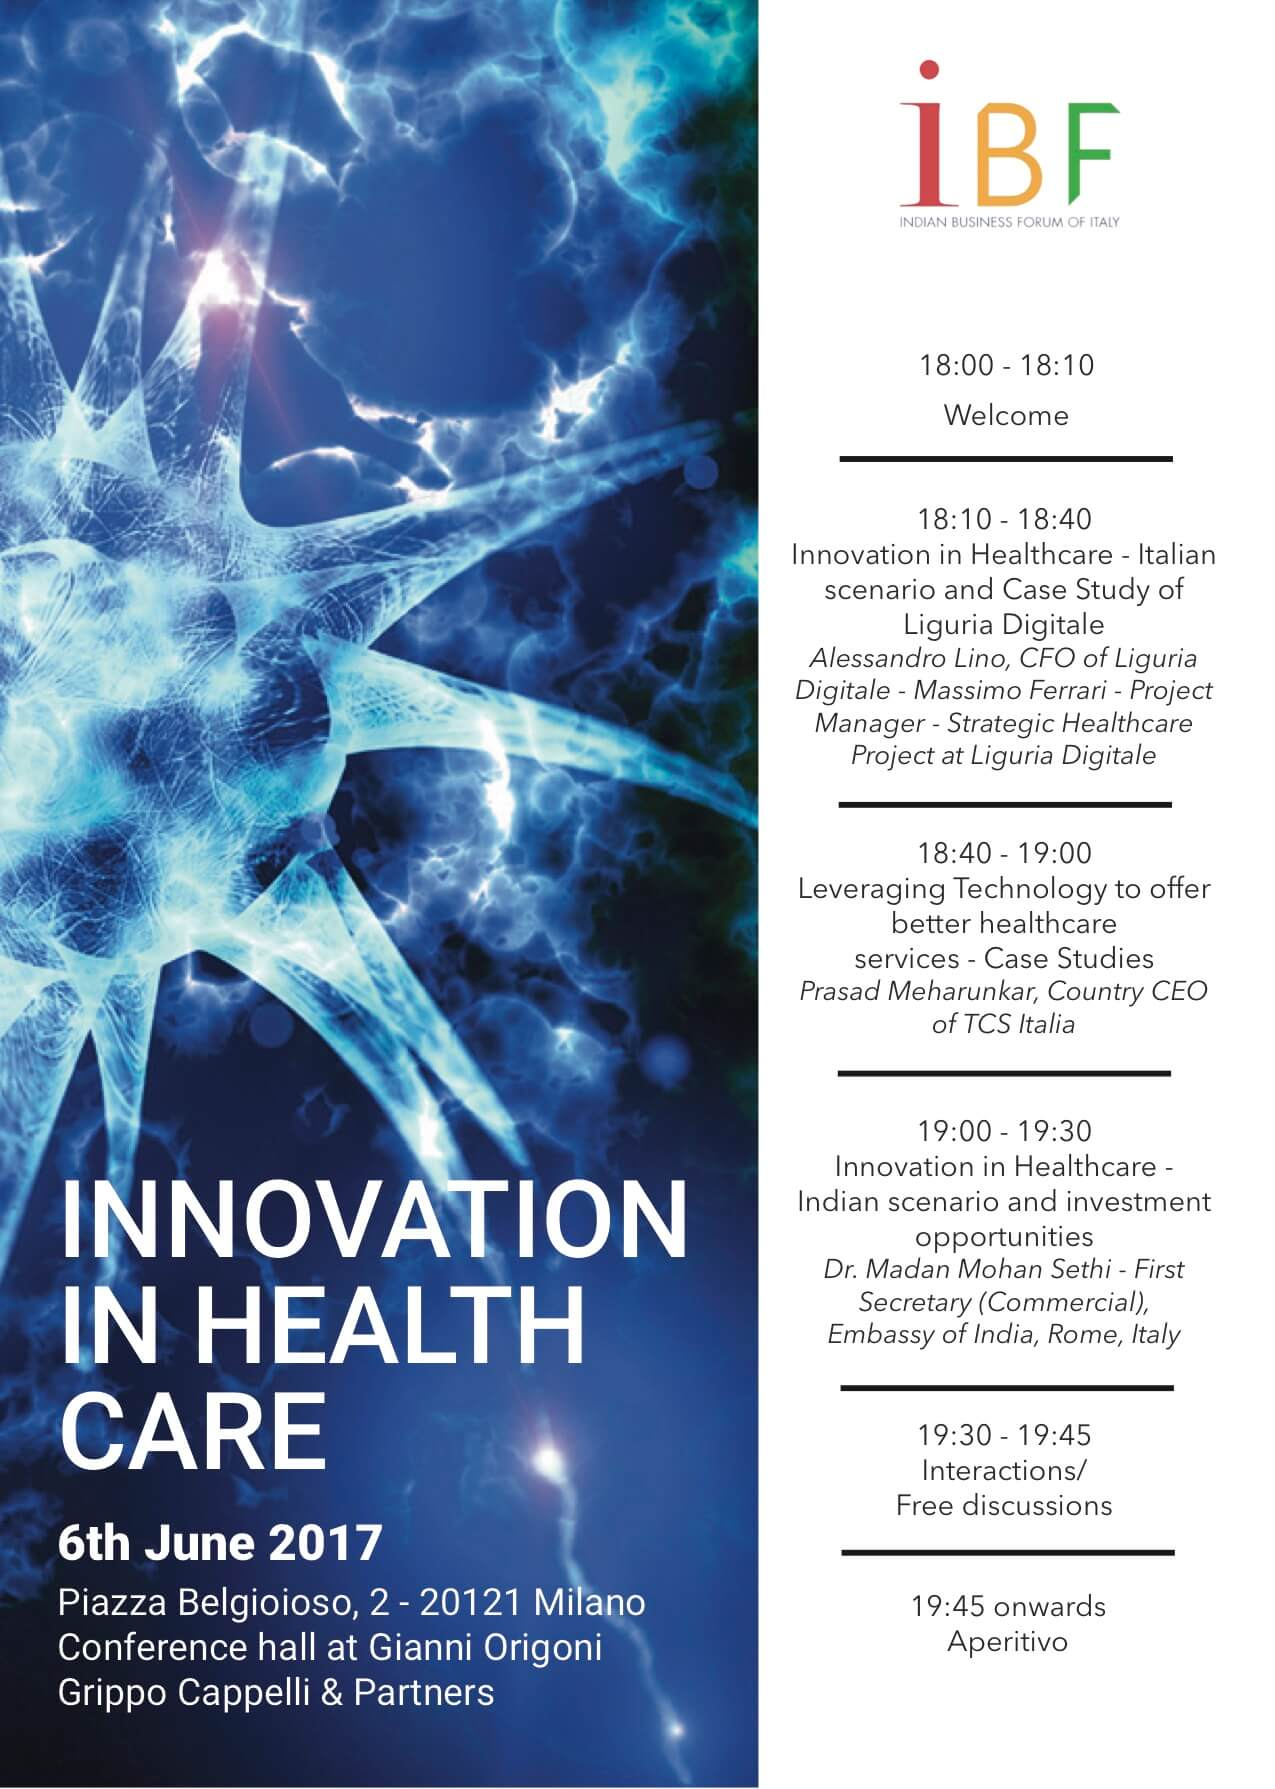 indian business forum of italy - media for health